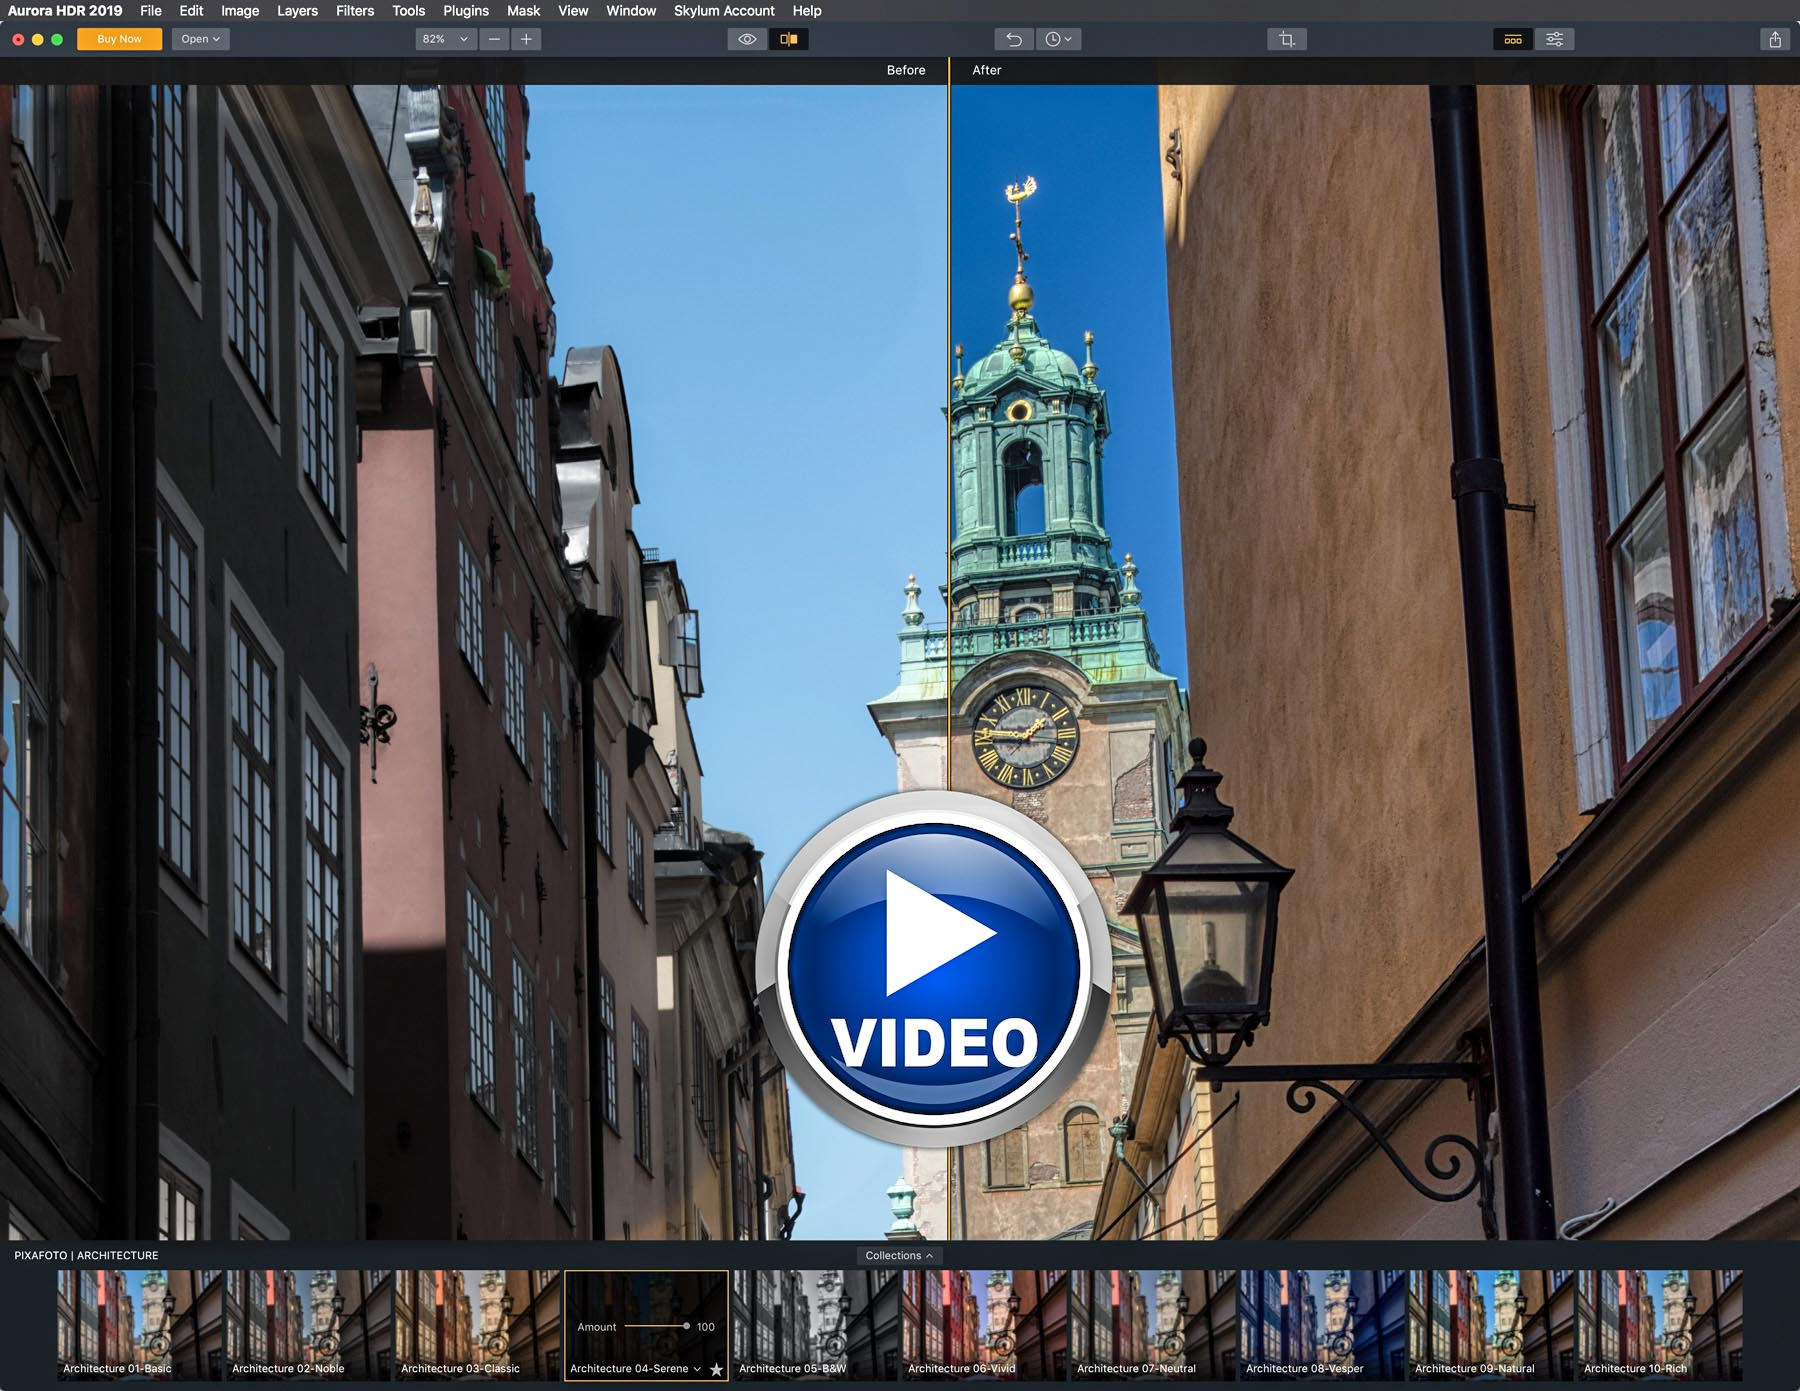 YouTube Video | Architecture Aurora HDR 2019 Presets from PixaFOTO.com